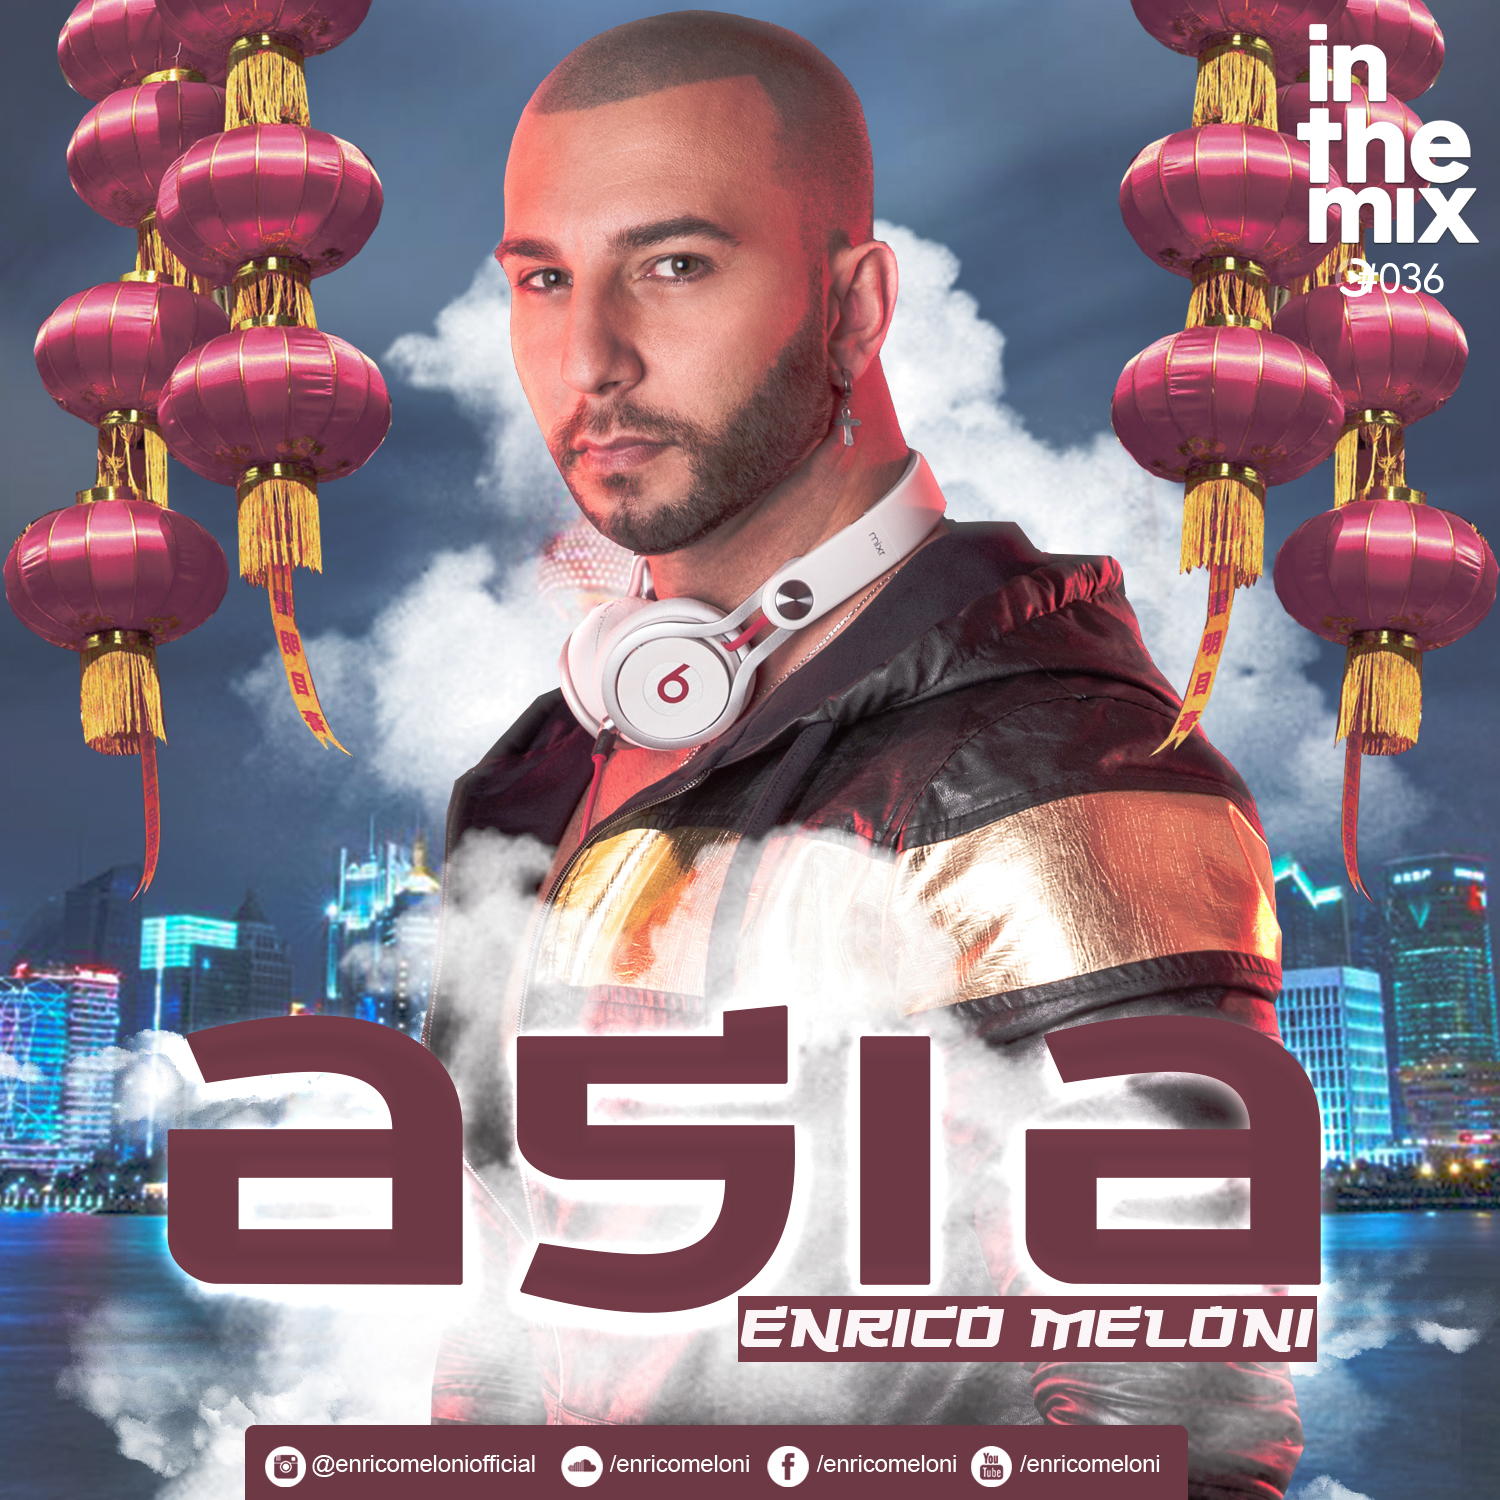 ENRICO MELONI - Asia (In The Mix #036 2K18)